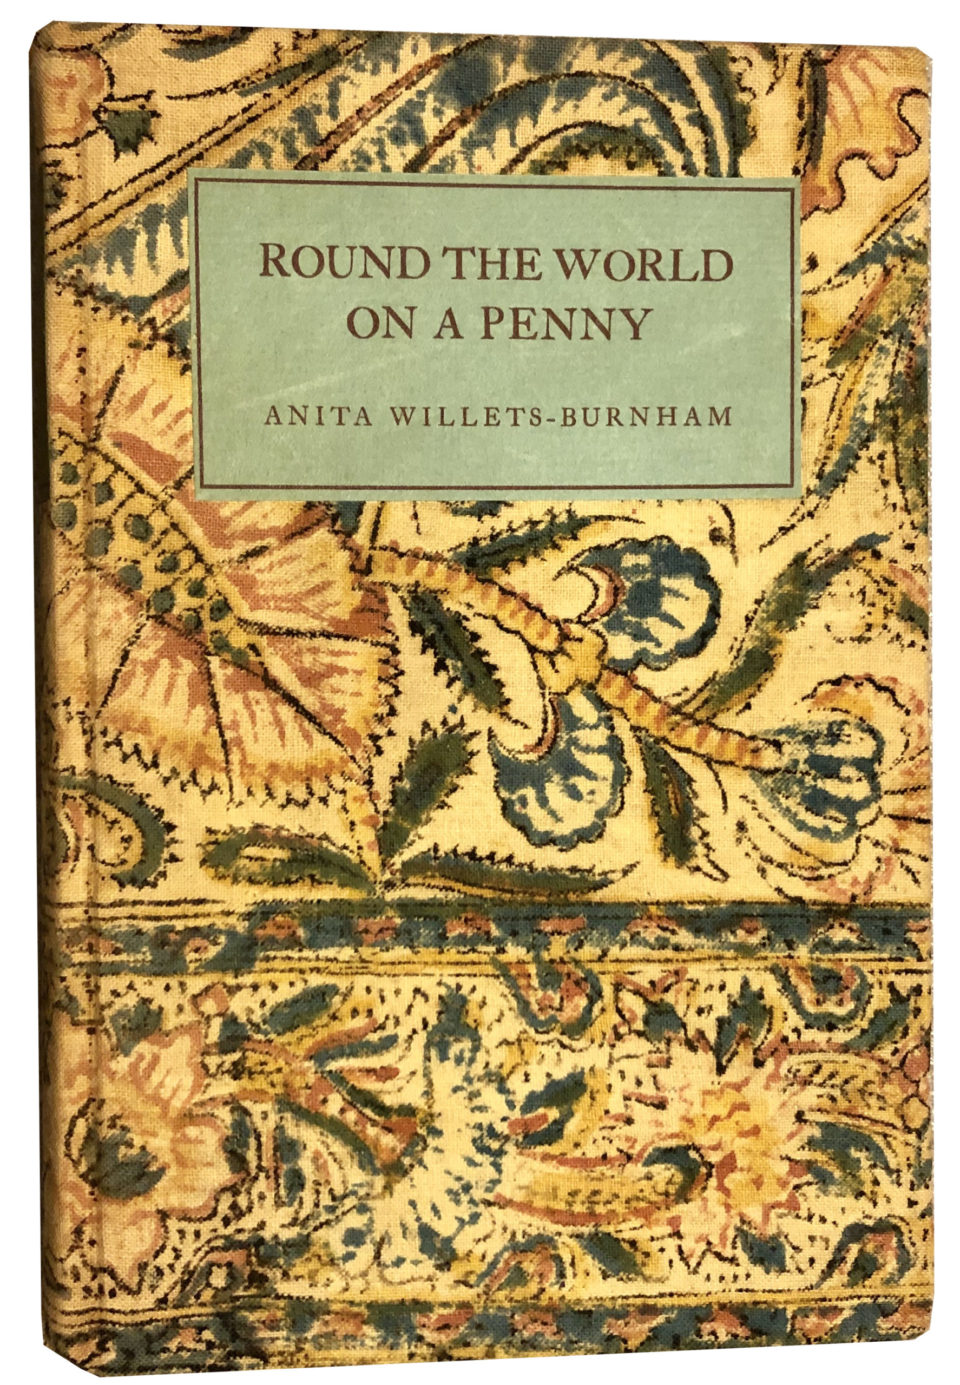 Round the World on a Penny by Anita Willets-Burnham, is a hilarious and sometimes harrowing account of her world travels with her family.